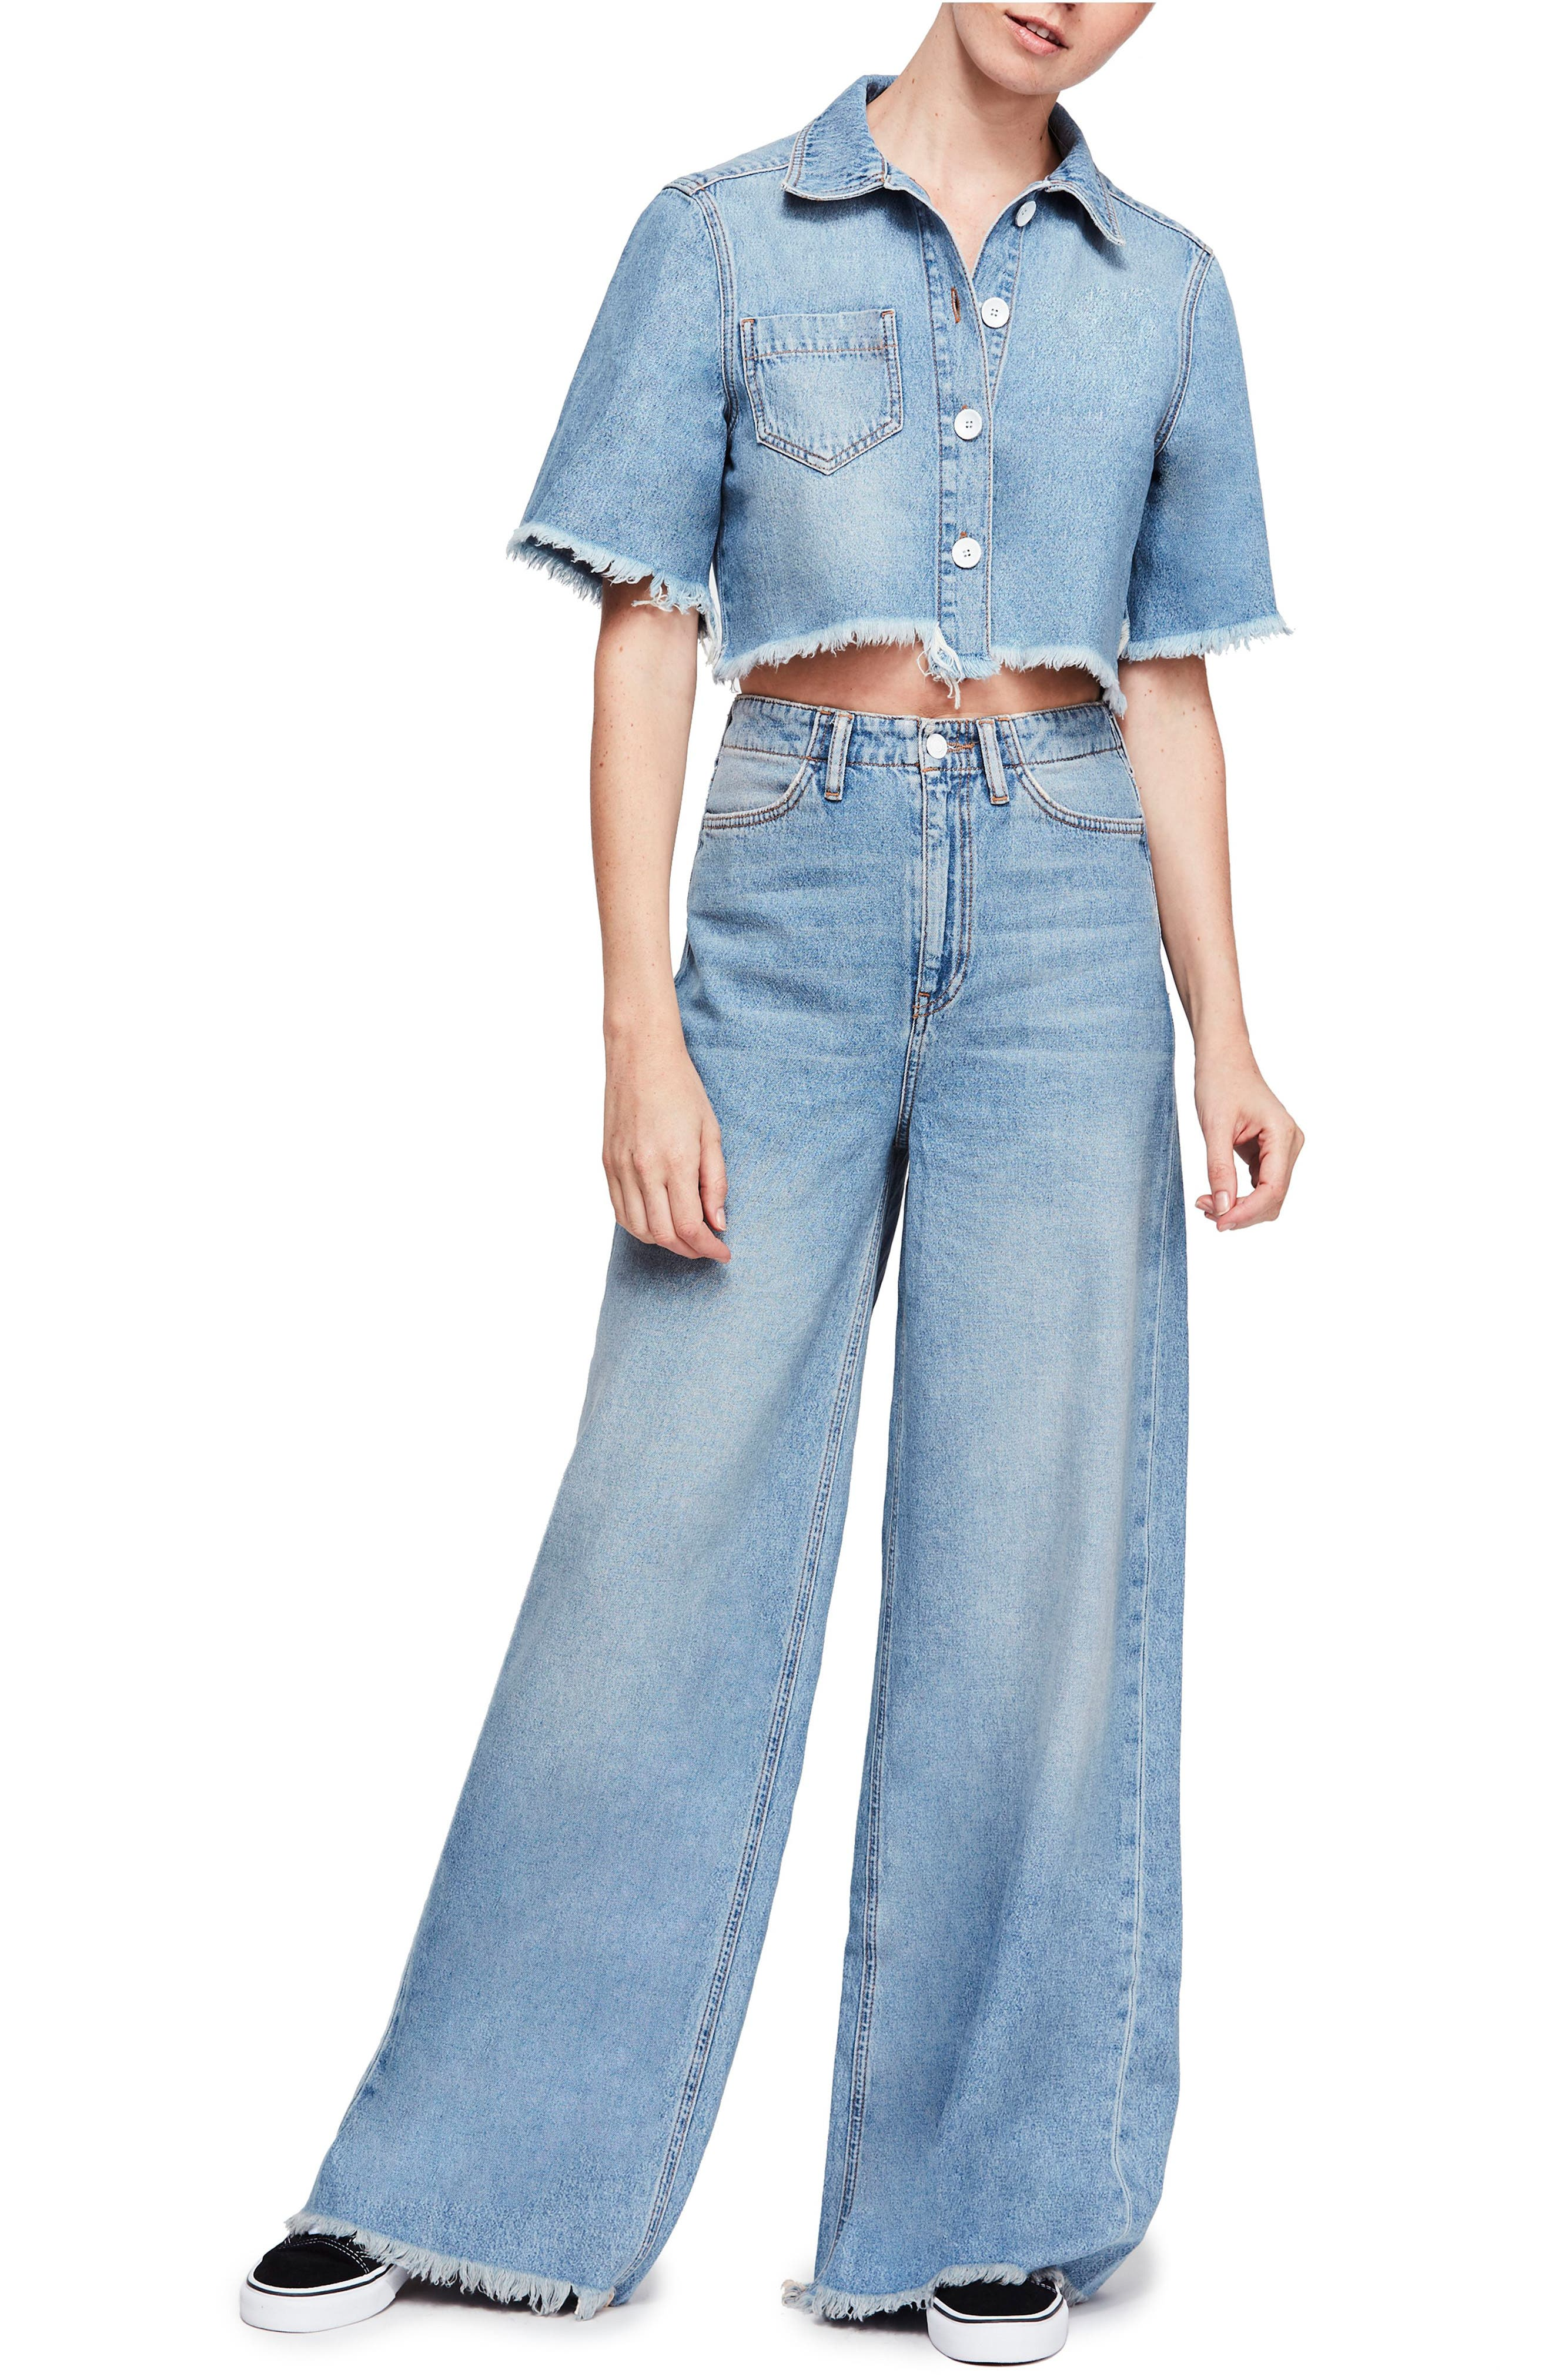 Vintage High Waisted Trousers, Sailor Pants, Jeans Womens Free People Dust In The Wind Crop Top  Flare Jeans Size 12 - Blue $100.80 AT vintagedancer.com